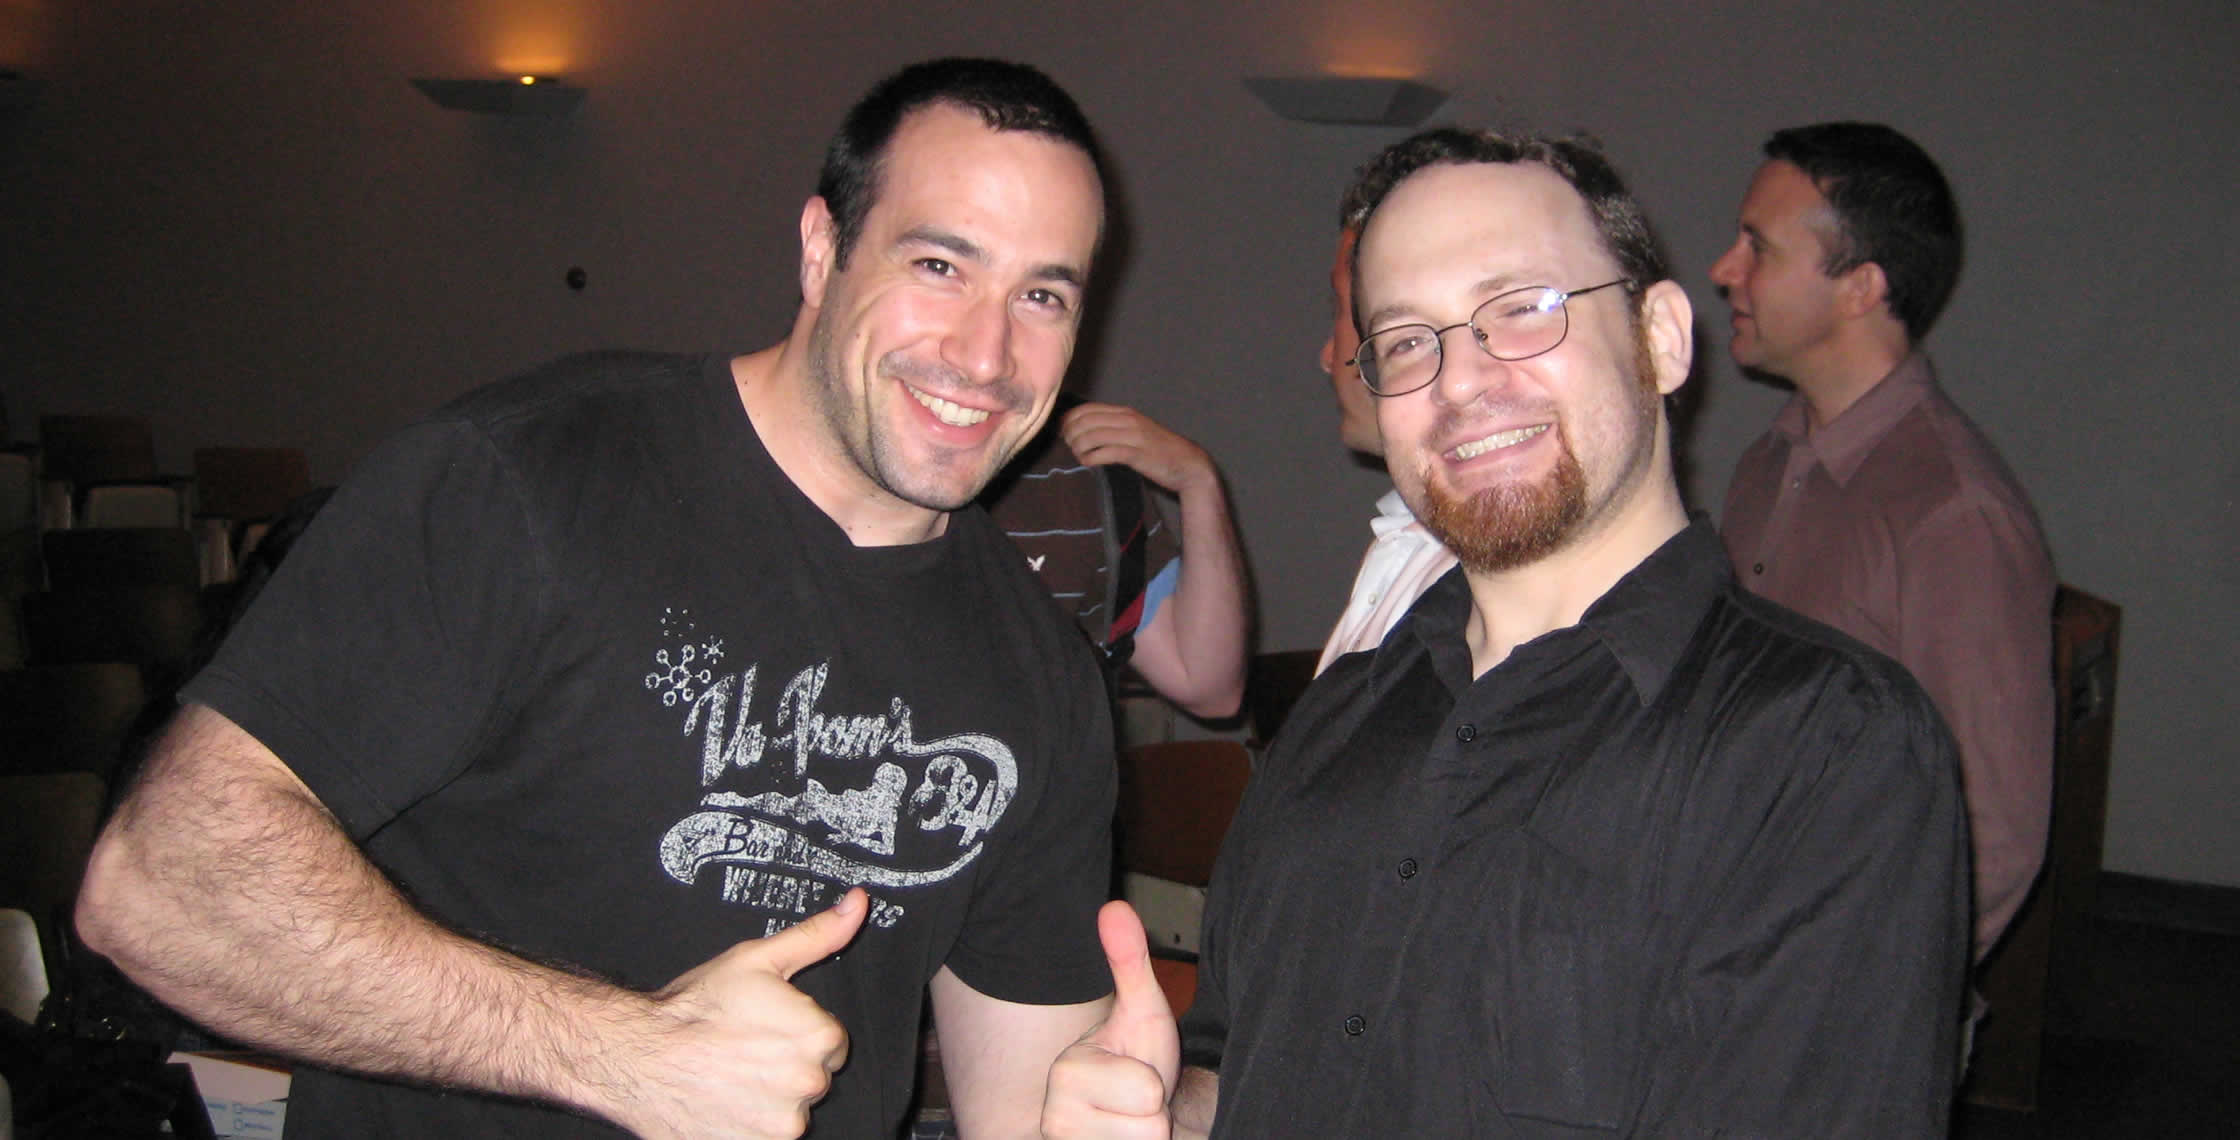 Ben Nadel at the New York ColdFusion User Group (Jul. 2008) with: Michael Dinowitz